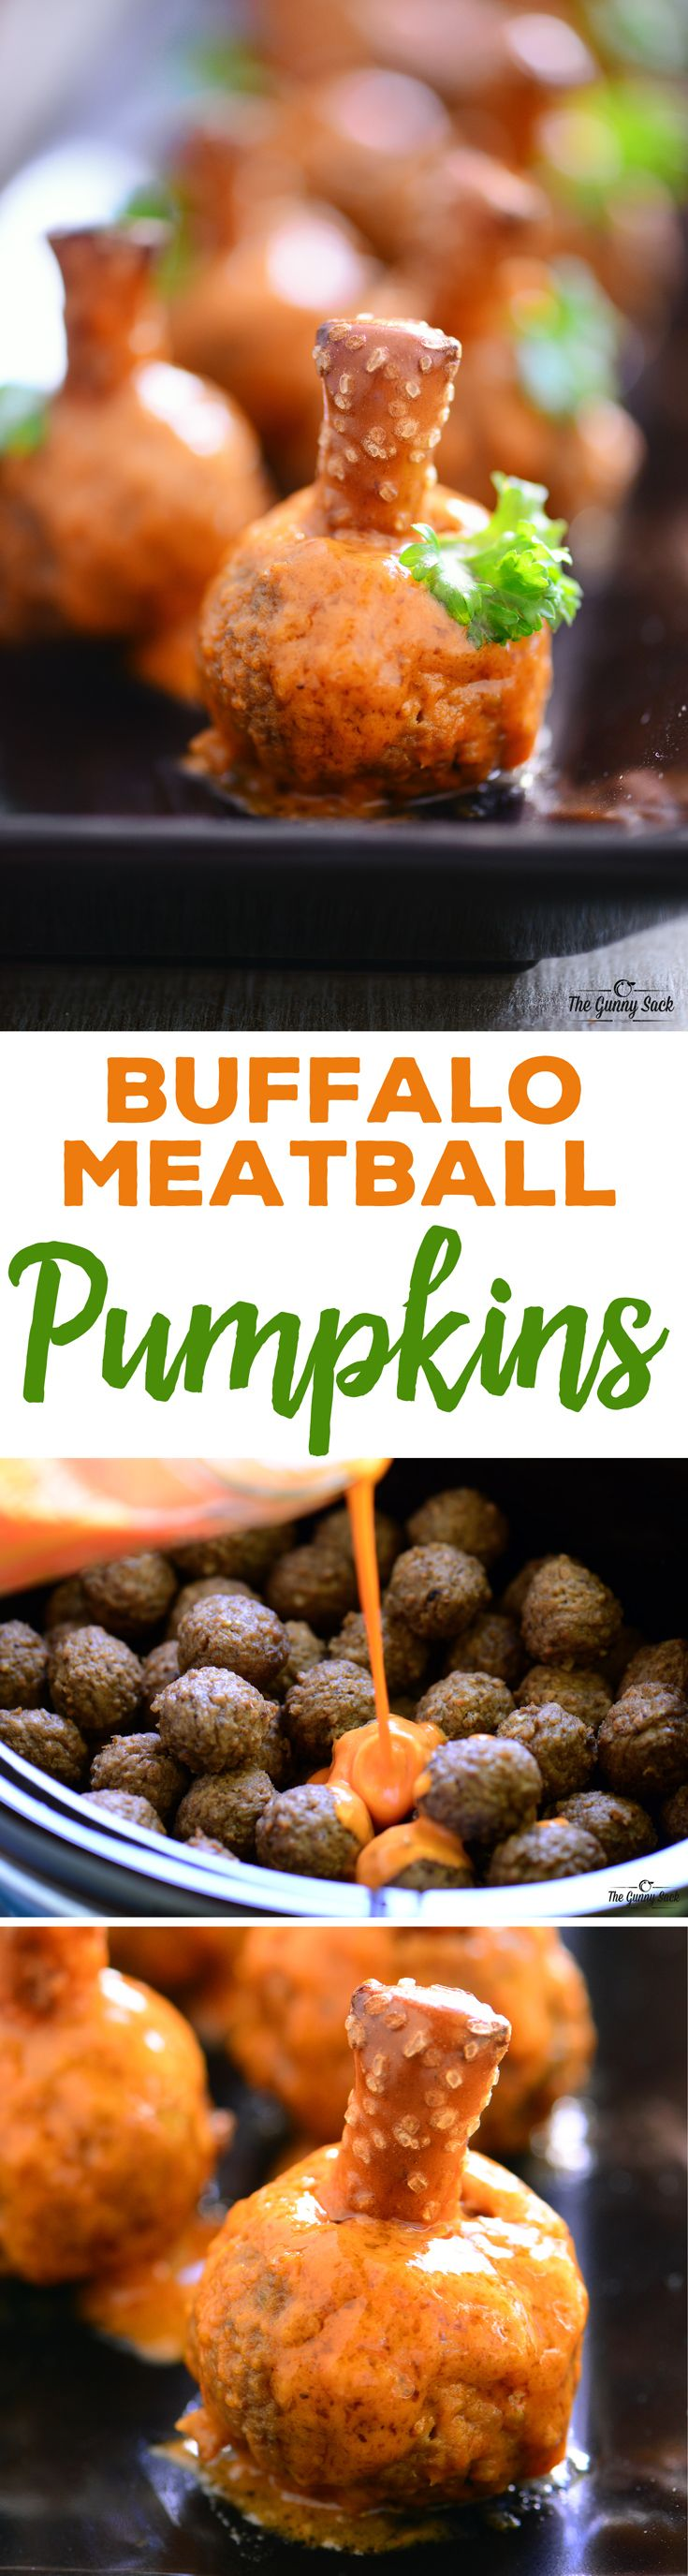 Looking for AWESOME Halloween recipes? Try these Buffalo Meatball Pumpkins for your fall parties. They have a pretzel stem, parsley leaf and buffalo sauce.